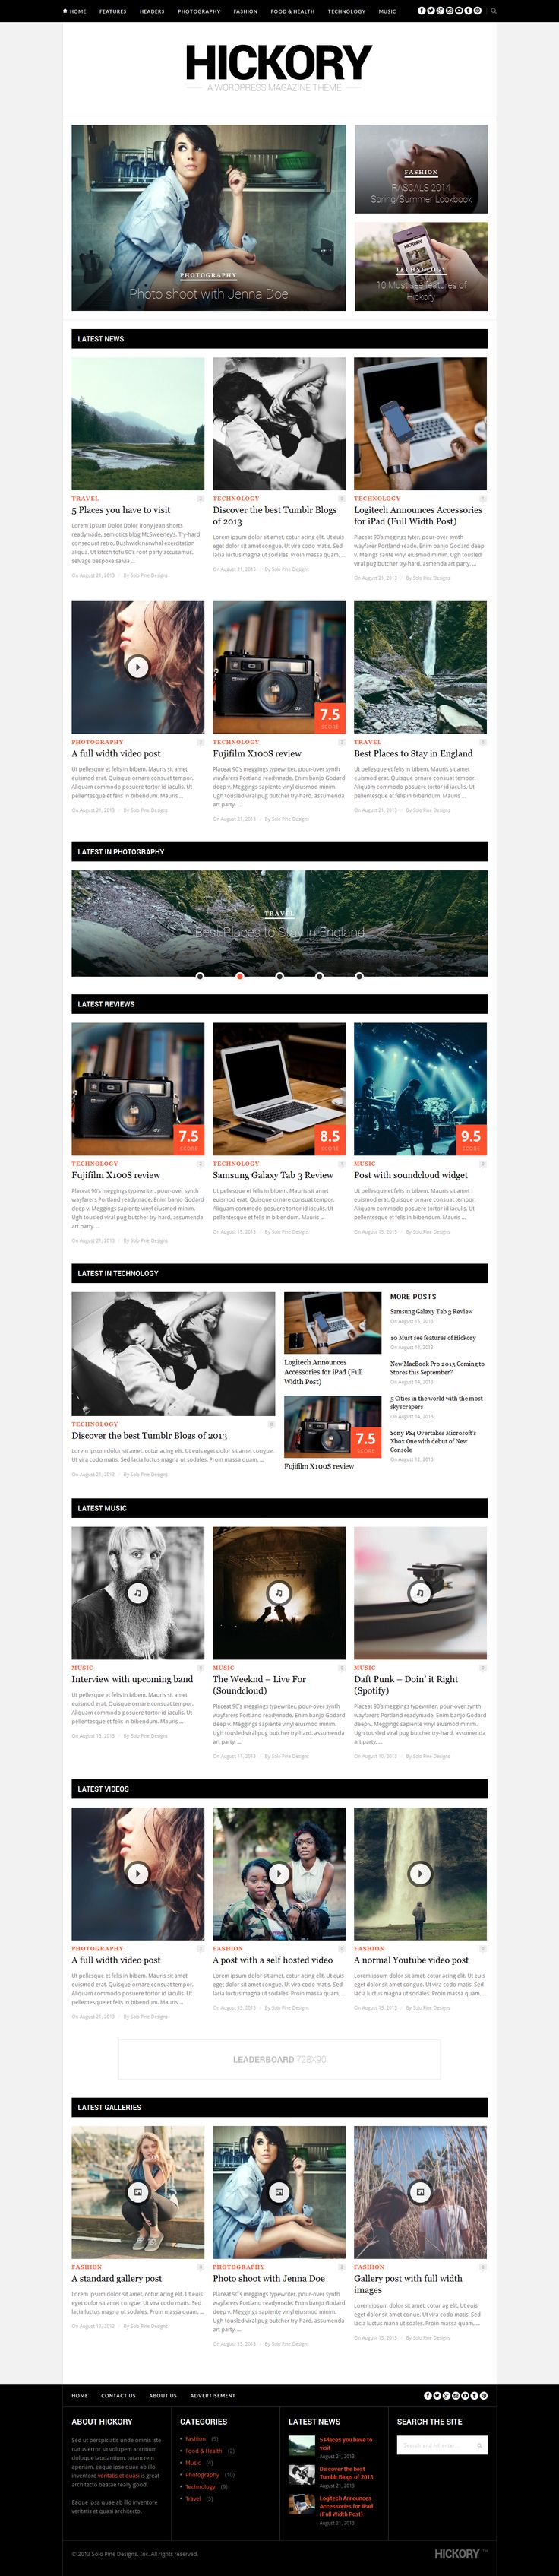 Hickory - A WordPress Magazine Theme | Live Preview and Download: http://themeforest.net/item/hickory-a-wordpress-magazine-theme/5437524?ref=ksioks